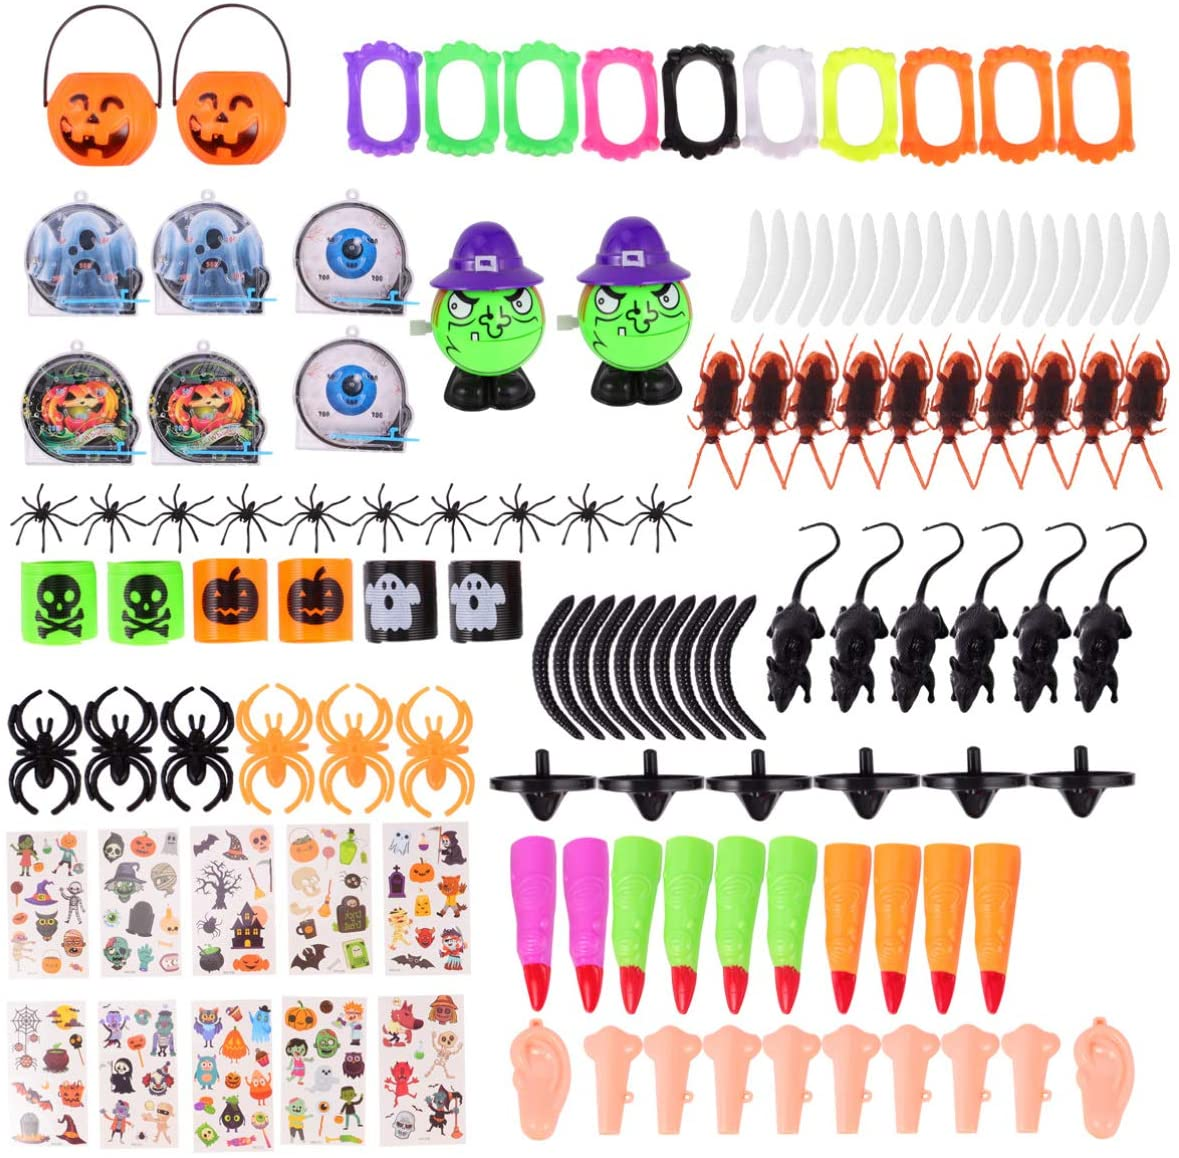 TENDYCOCO 120pcs Kids Party Toy Halloween Scary Props Halloween Tricky Toys Funny Carnival Photo Props